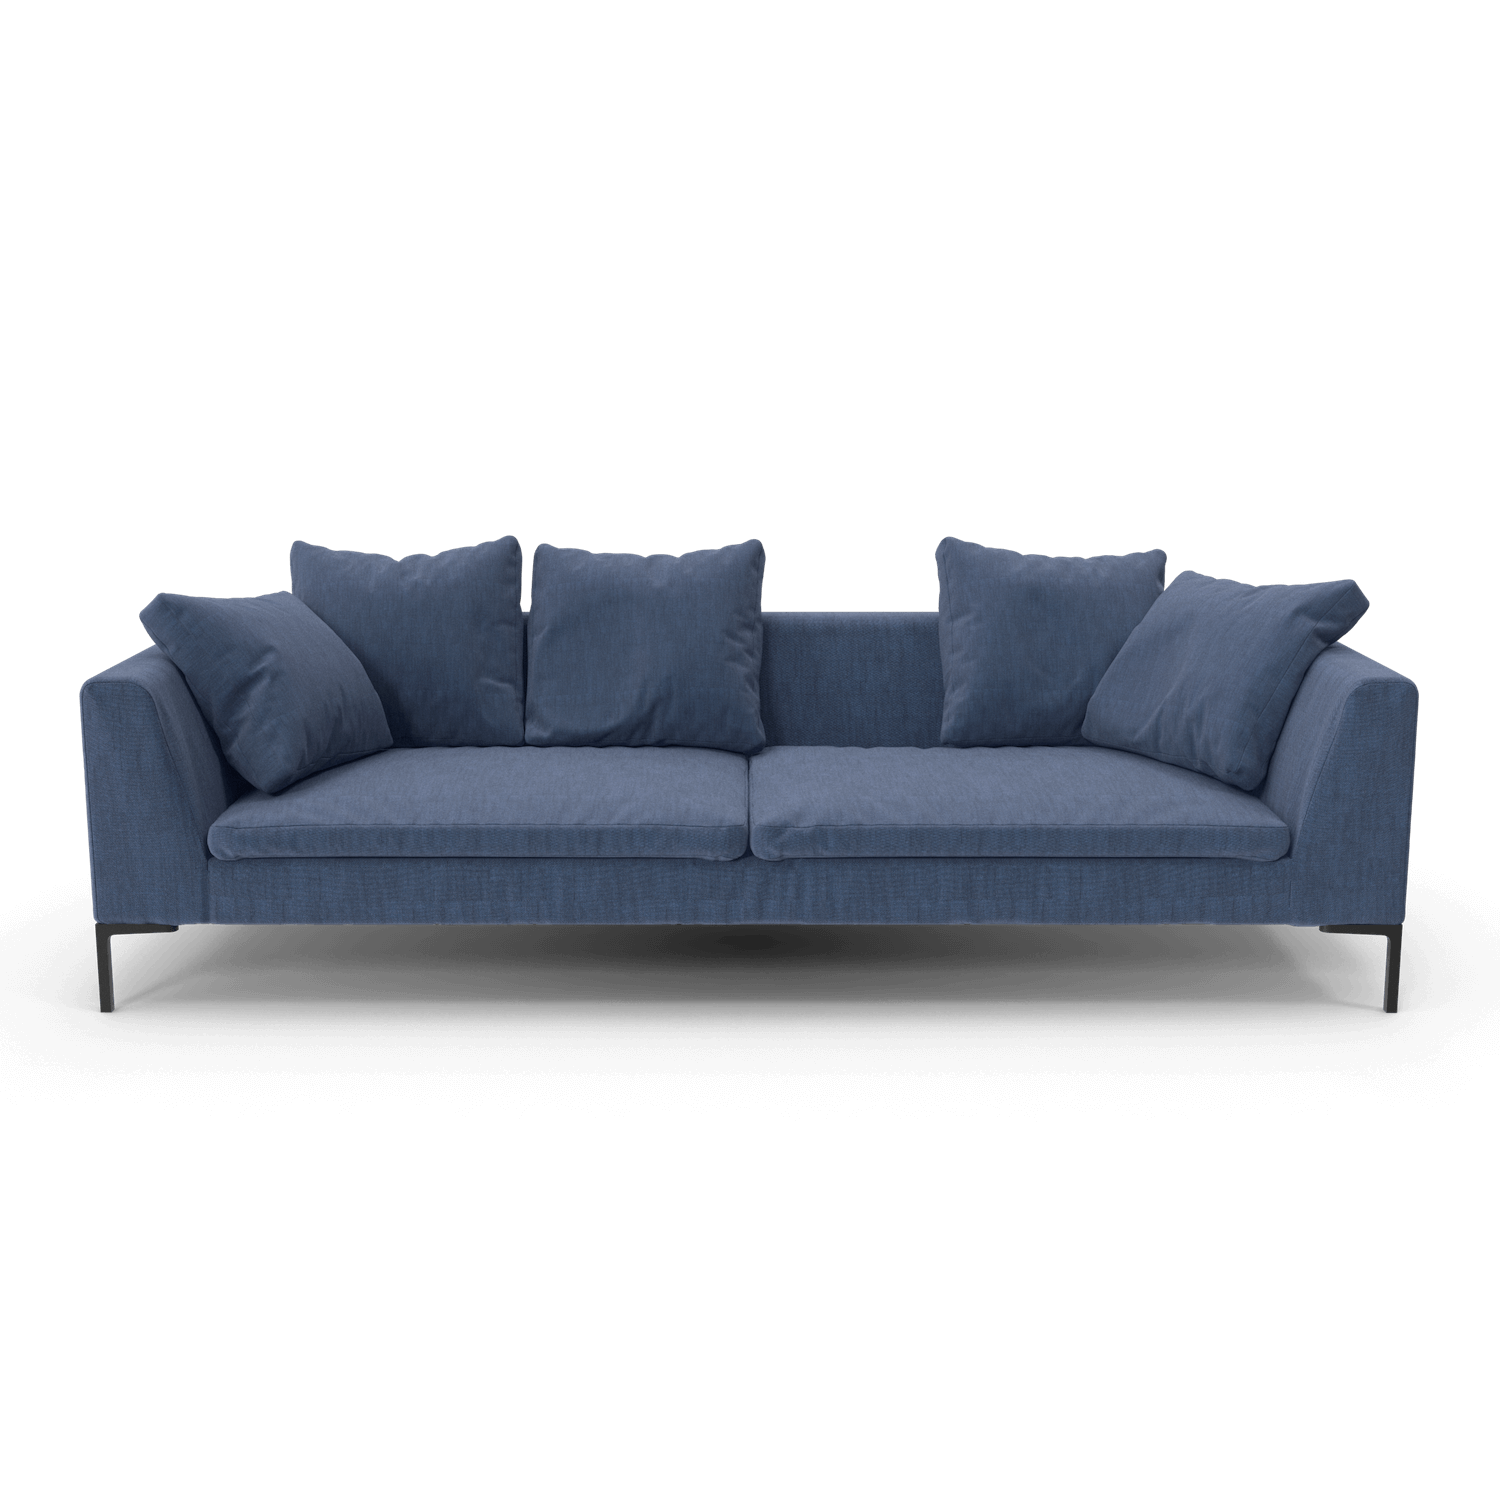 couch after upholstery cleaning herriman ut